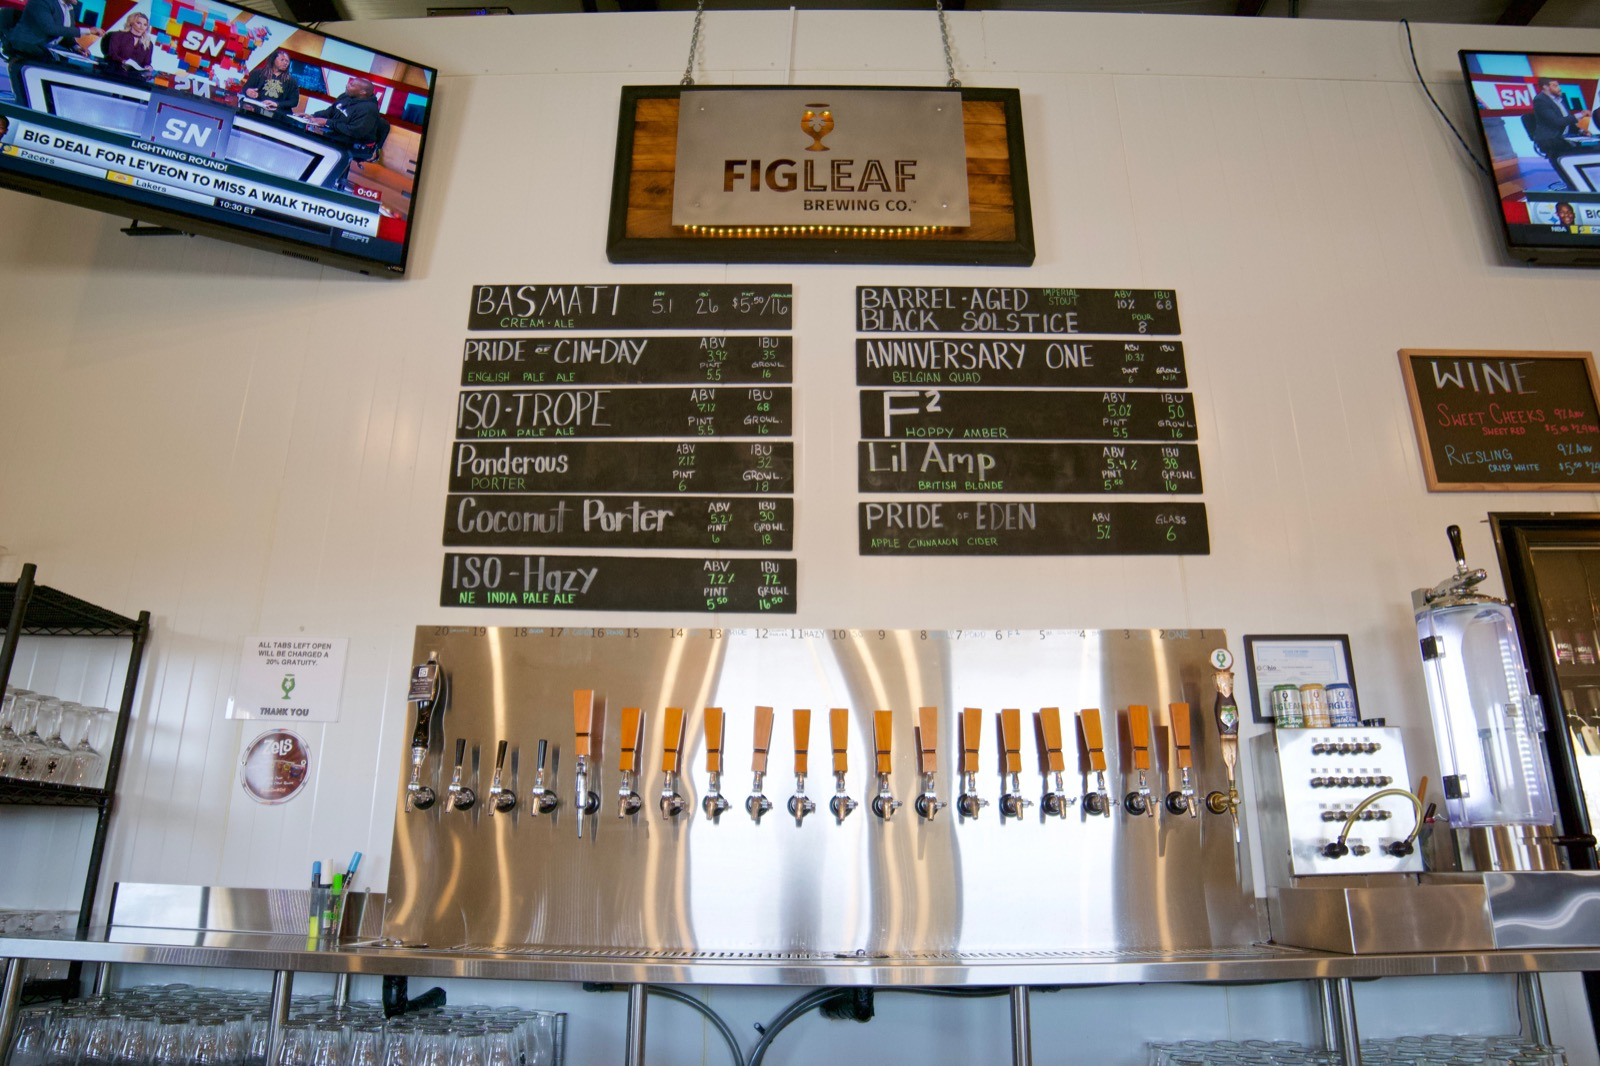 FigLeaf was founded in 2016 to bridge the craft-beer divide between Dayton and Cincy. It succeeds with a lineup of varied and delicious beers, including porters, saisons, hazy IPAs, and even experimental ciders. Moreover, the taproom atmosphere is friendly and comfortable, with board games, large tables, and a covered outdoor patio. / Image: Brian Planalp // Published: 1.28.18